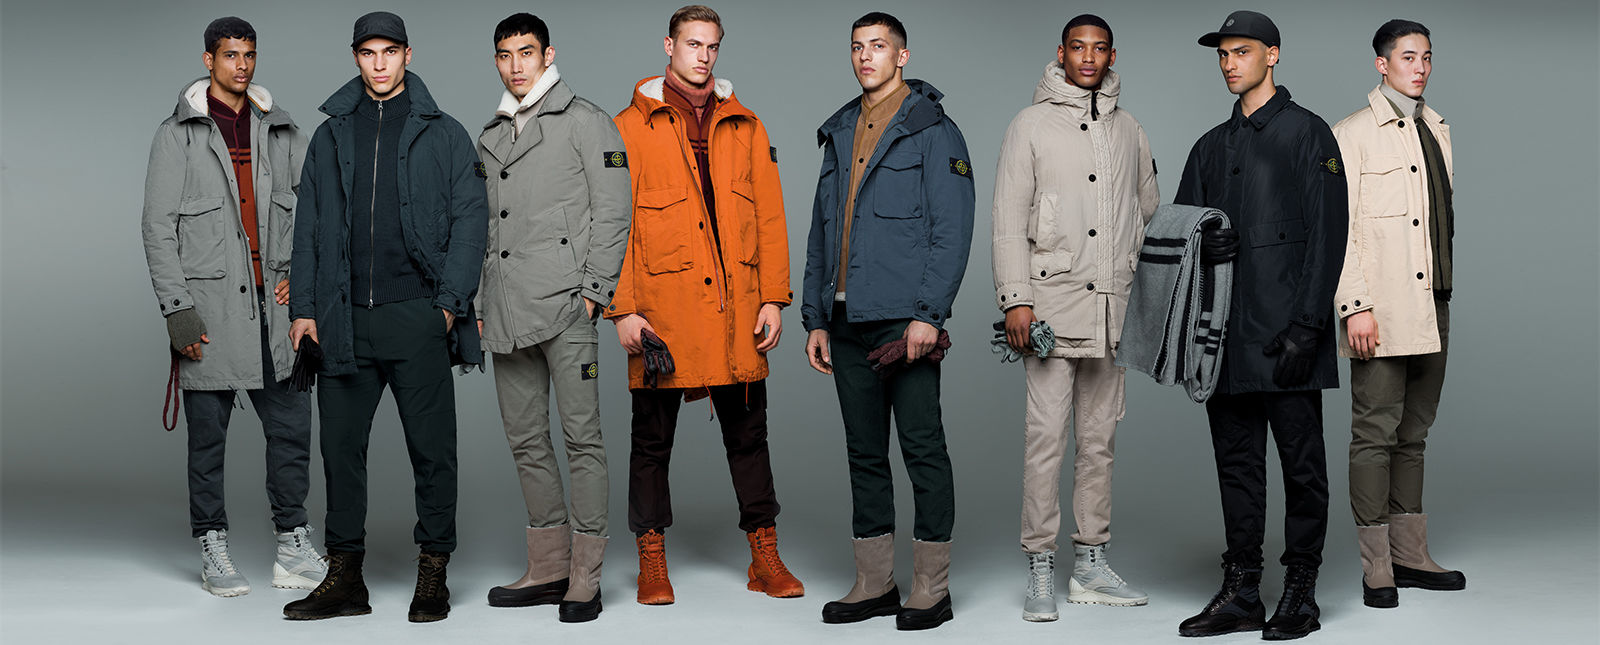 Eight models wearing Stone Island jackets in different colors and styles.